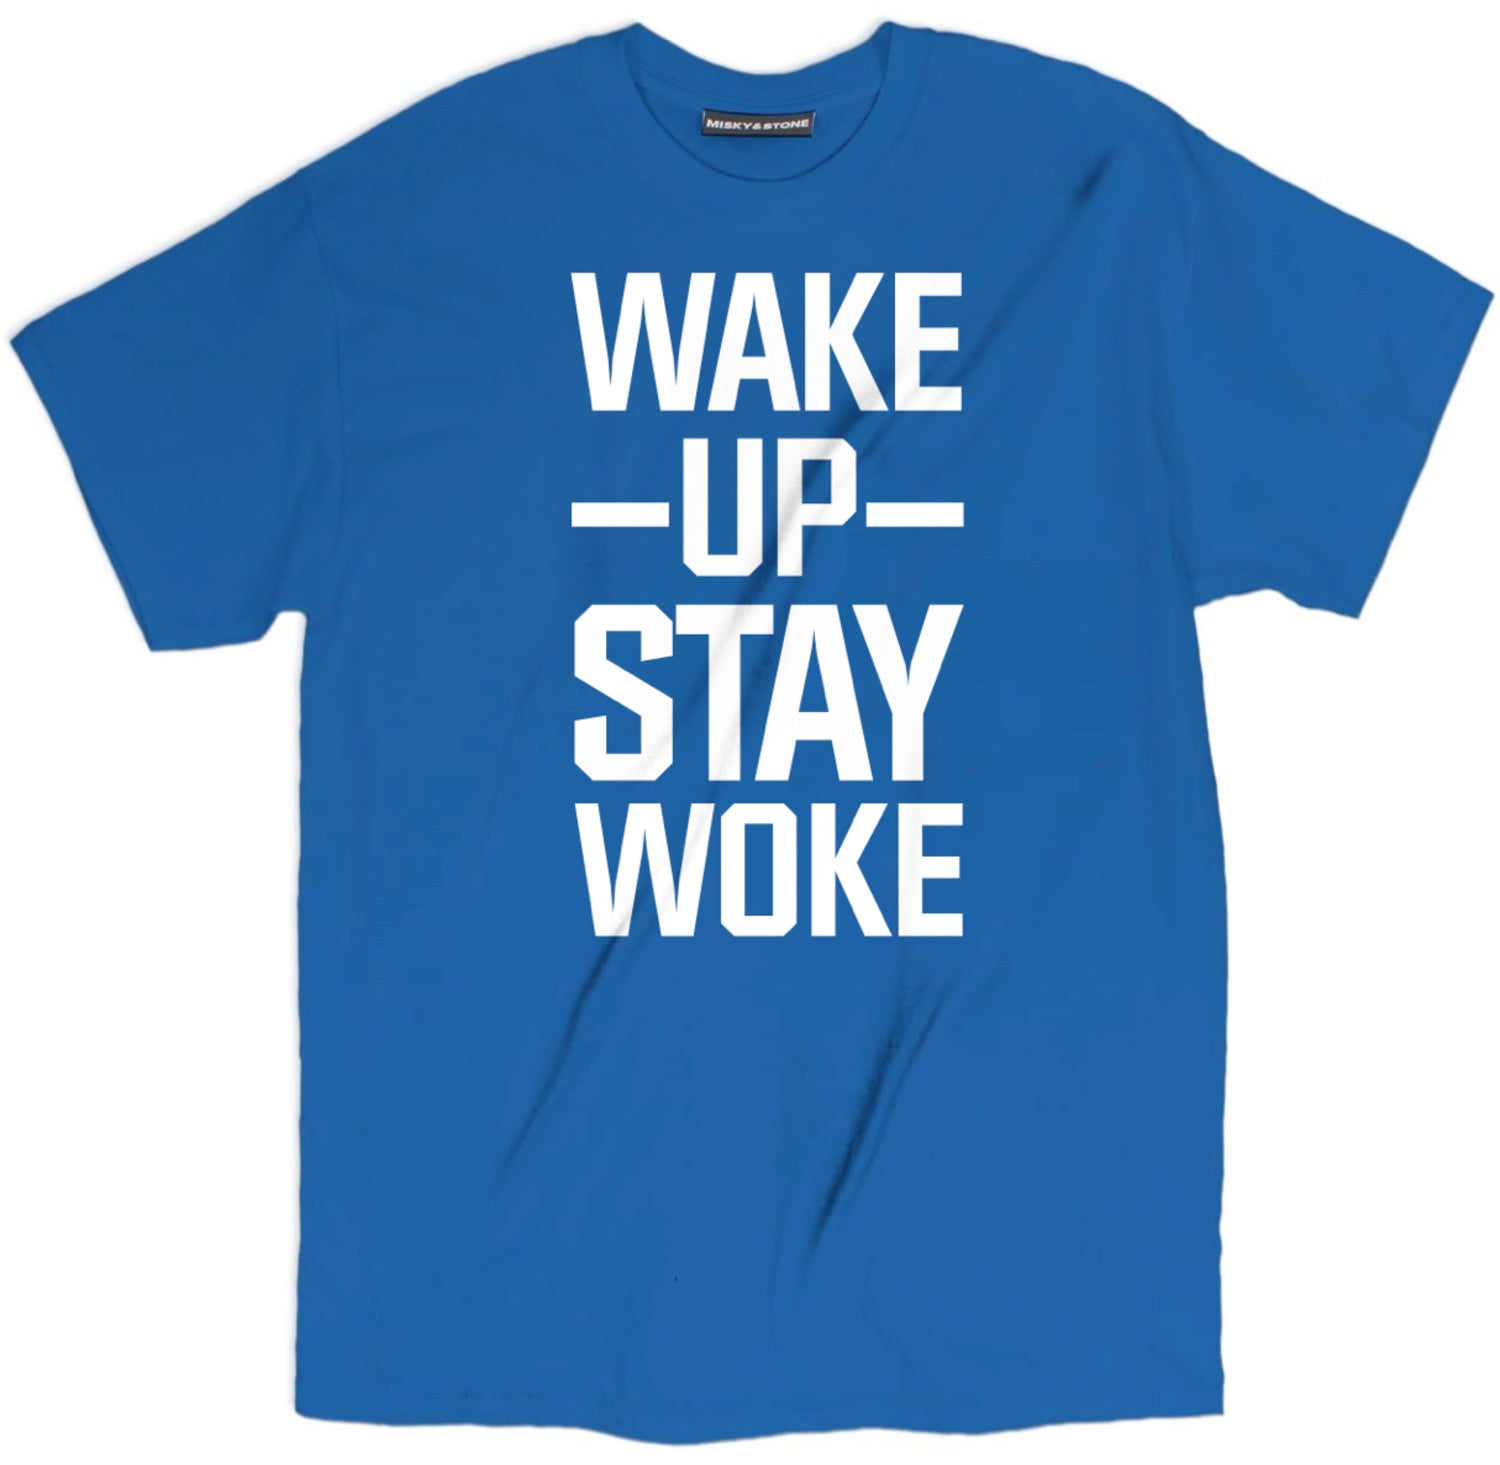 stay woke shirt, stay woke t shirt, woke t shirt, woke shirt, stay woke clothing, funny shirts with sayings, funny t shirt sayings, shirts with sayings, funny t shirt quotes, t shirt quotes, tee shirts with sayings, tee shirt quotes, quote tees, hilarious t shirt sayings, funny tee shirt sayings, t shirts with sayings on them,